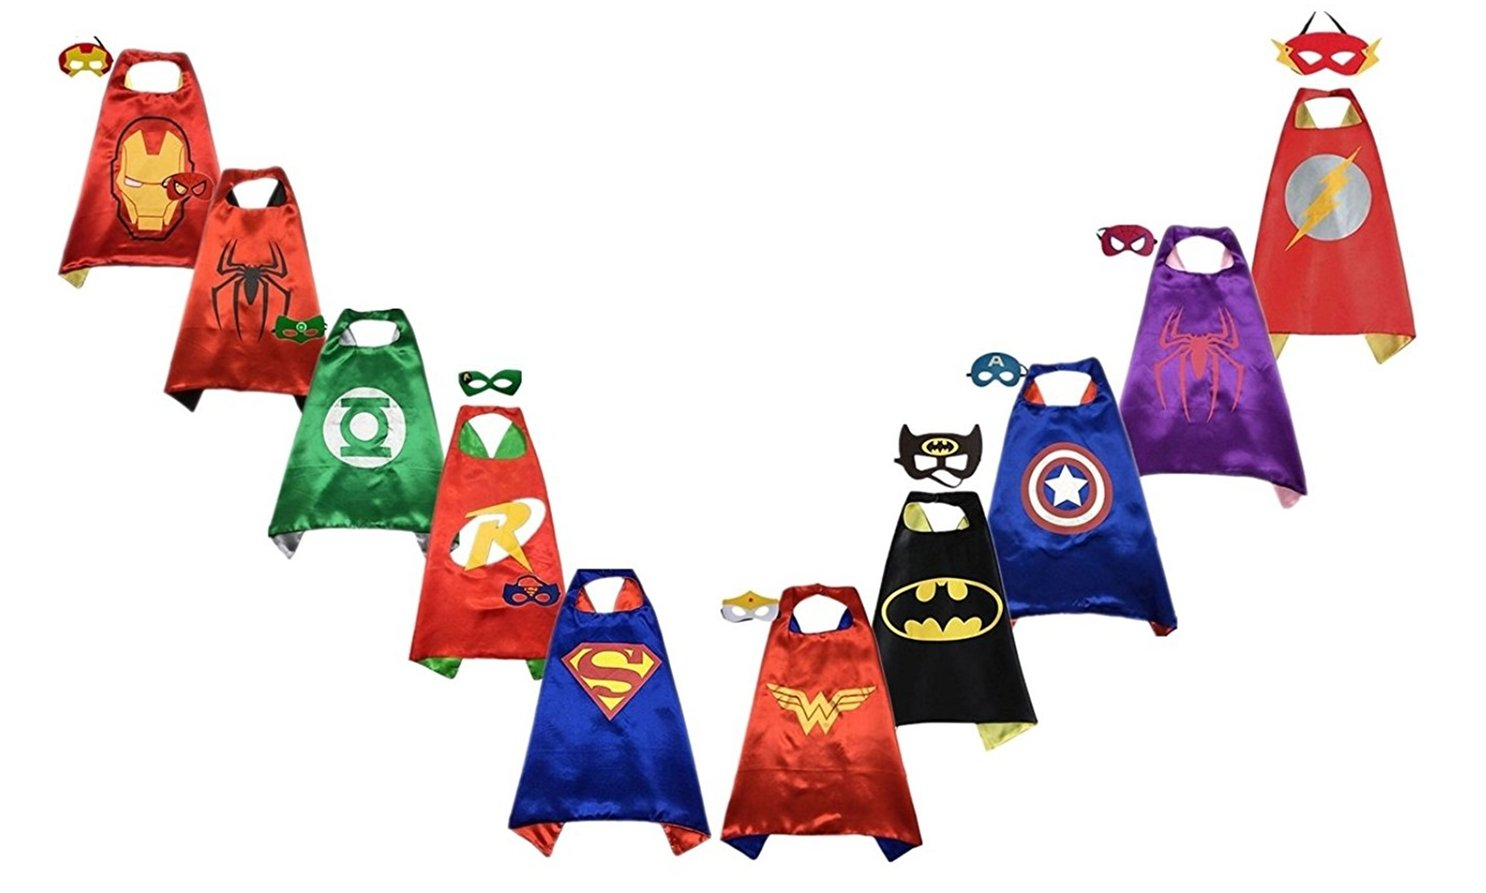 RANAVY Superhero Capes and Masks Bulk Set Dress Up for Kids - Children DIY Birthday Party Costumes (10 Pcs(27'' x 27''))